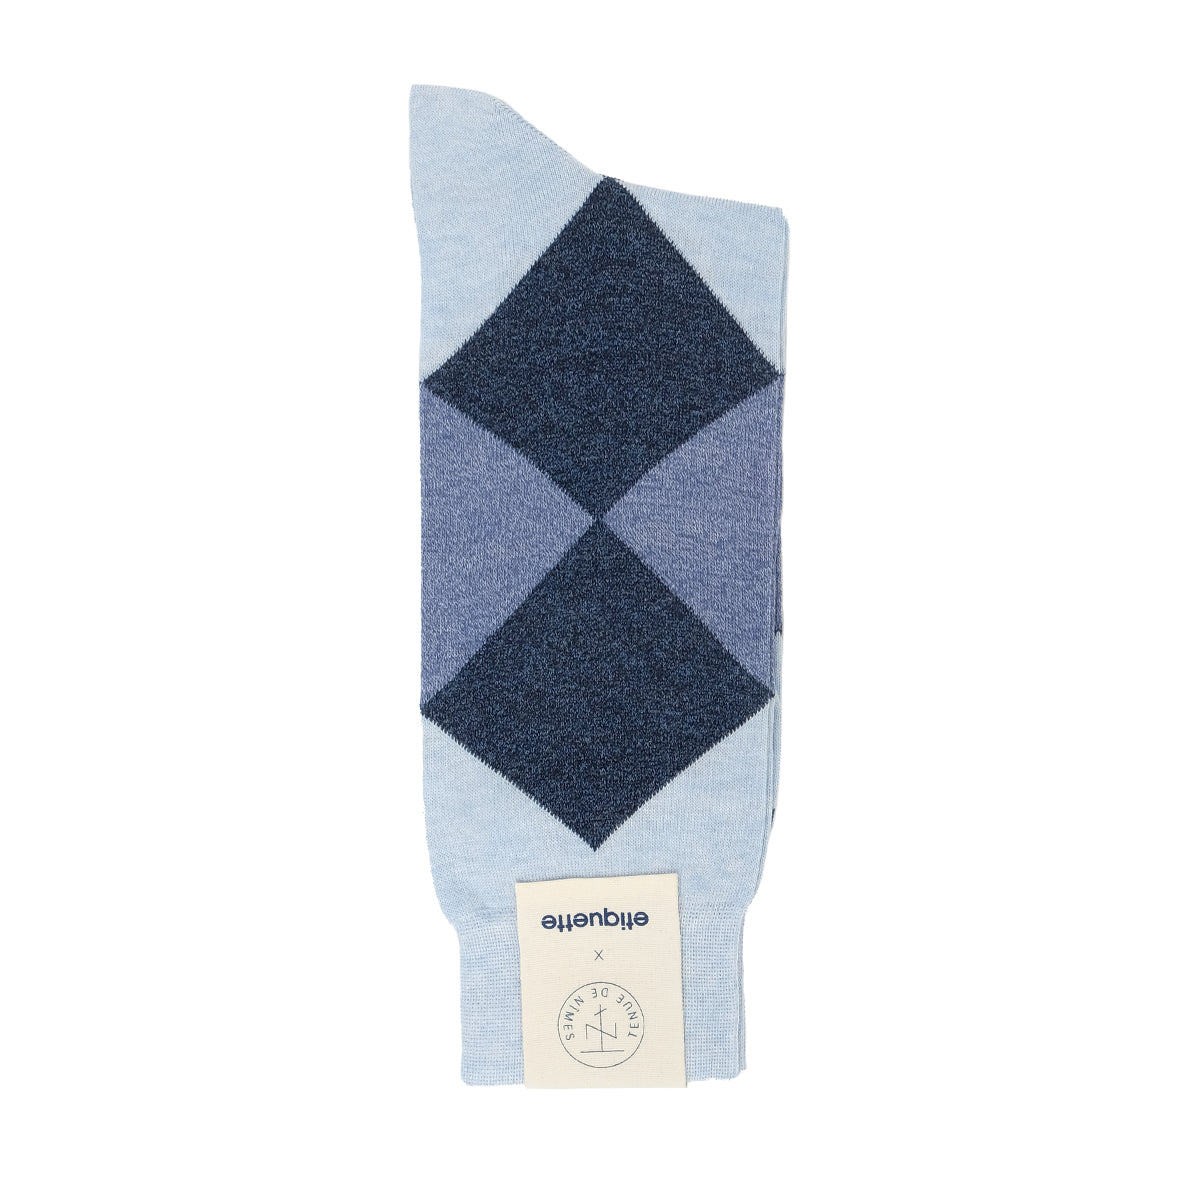 Mens Socks - Etiquette x TDN Harlequin Men's Socks - Blue⎪Etiquette Clothiers